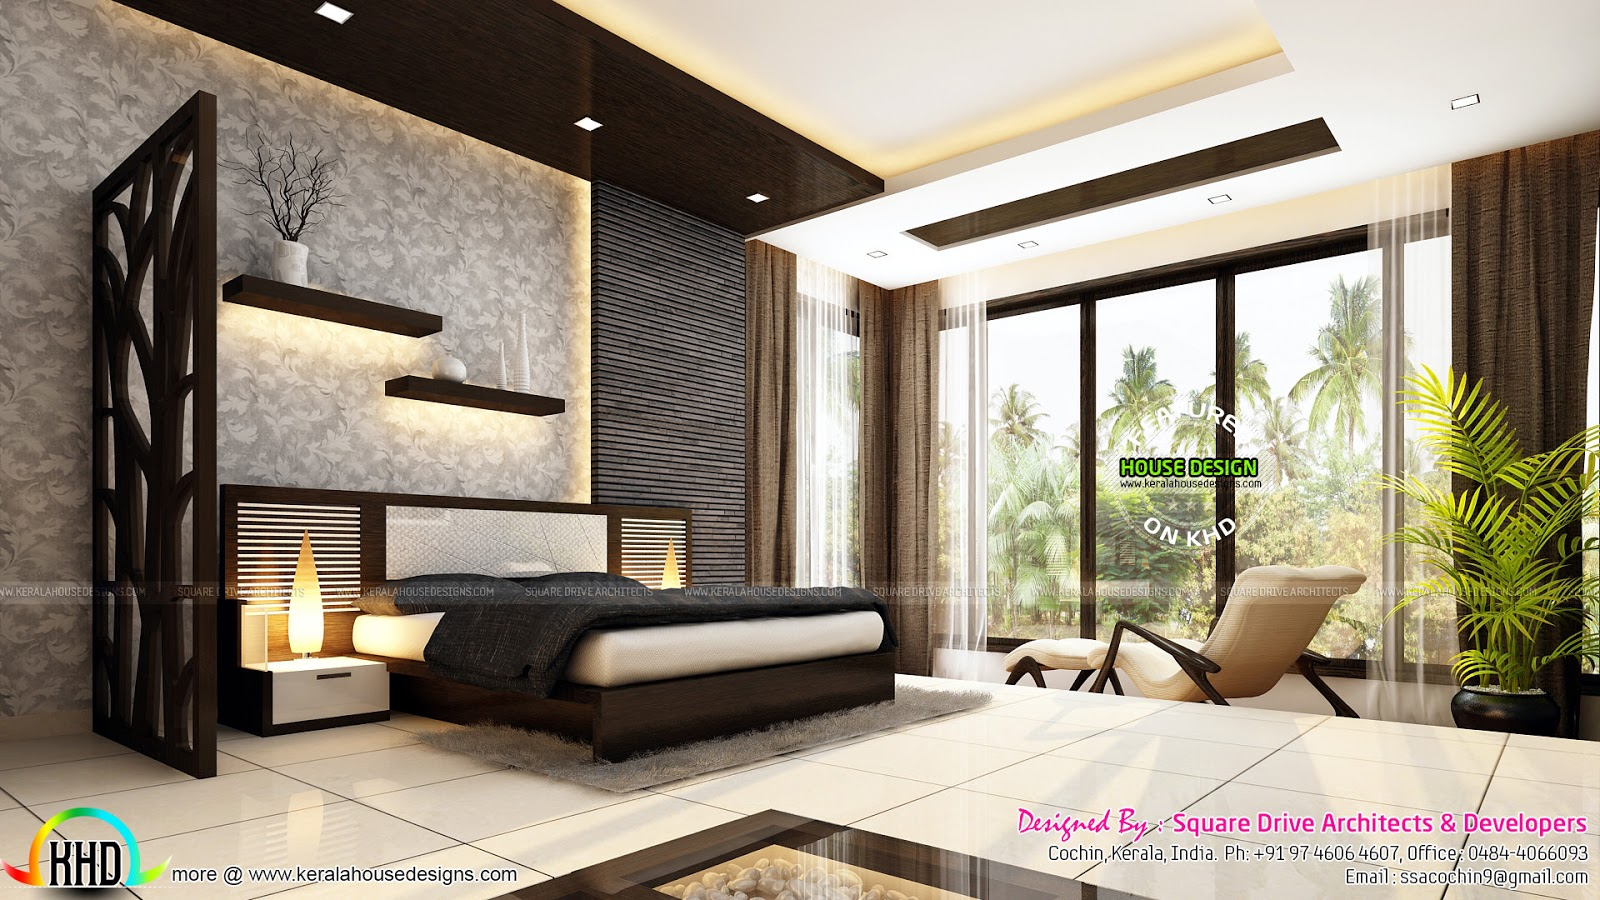 Very beautiful modern interior designs kerala home for Home plans with interior pictures